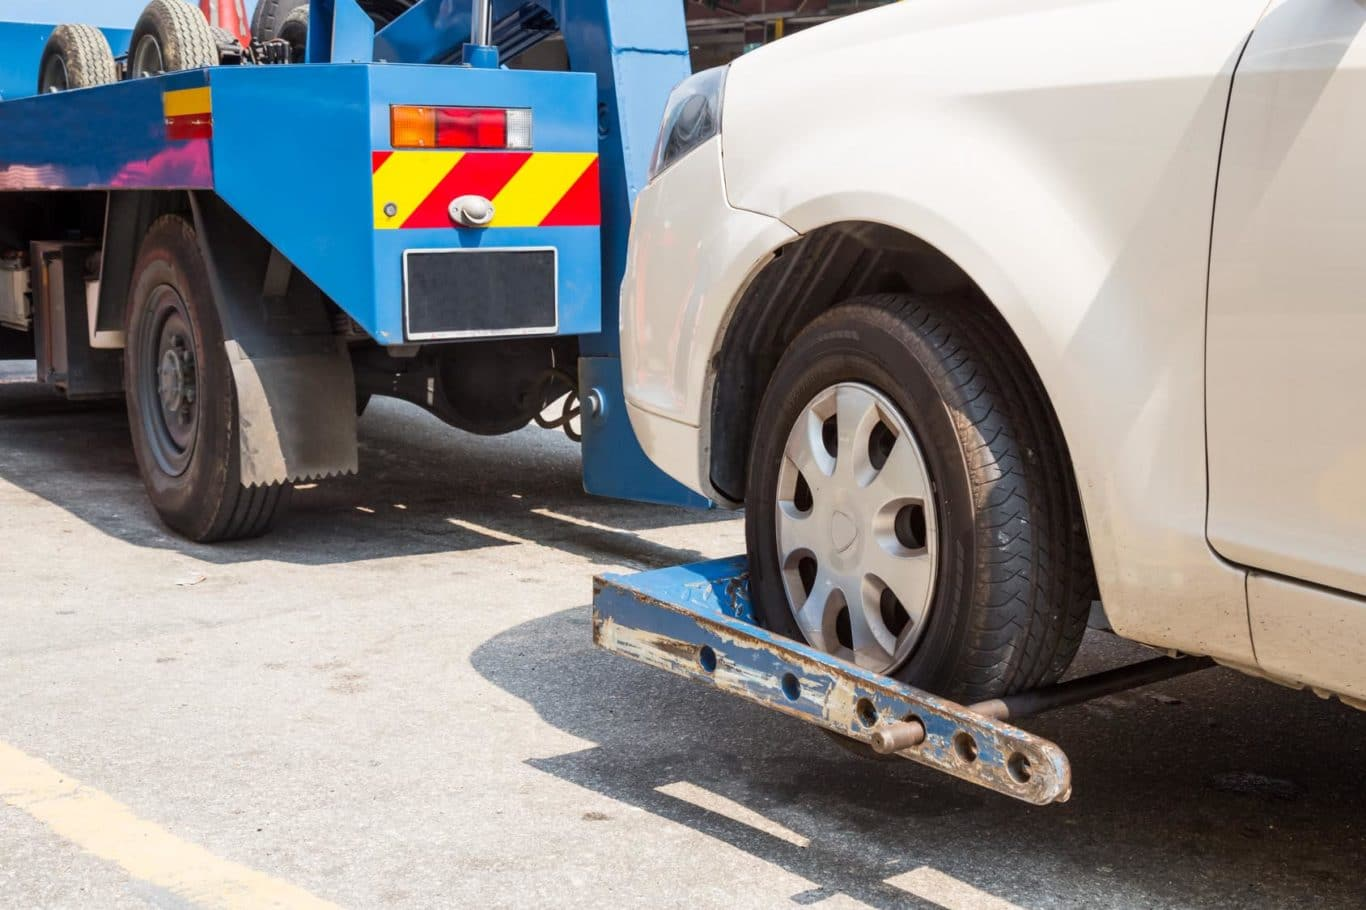 Aghavannagh expert Roadside Assistance services